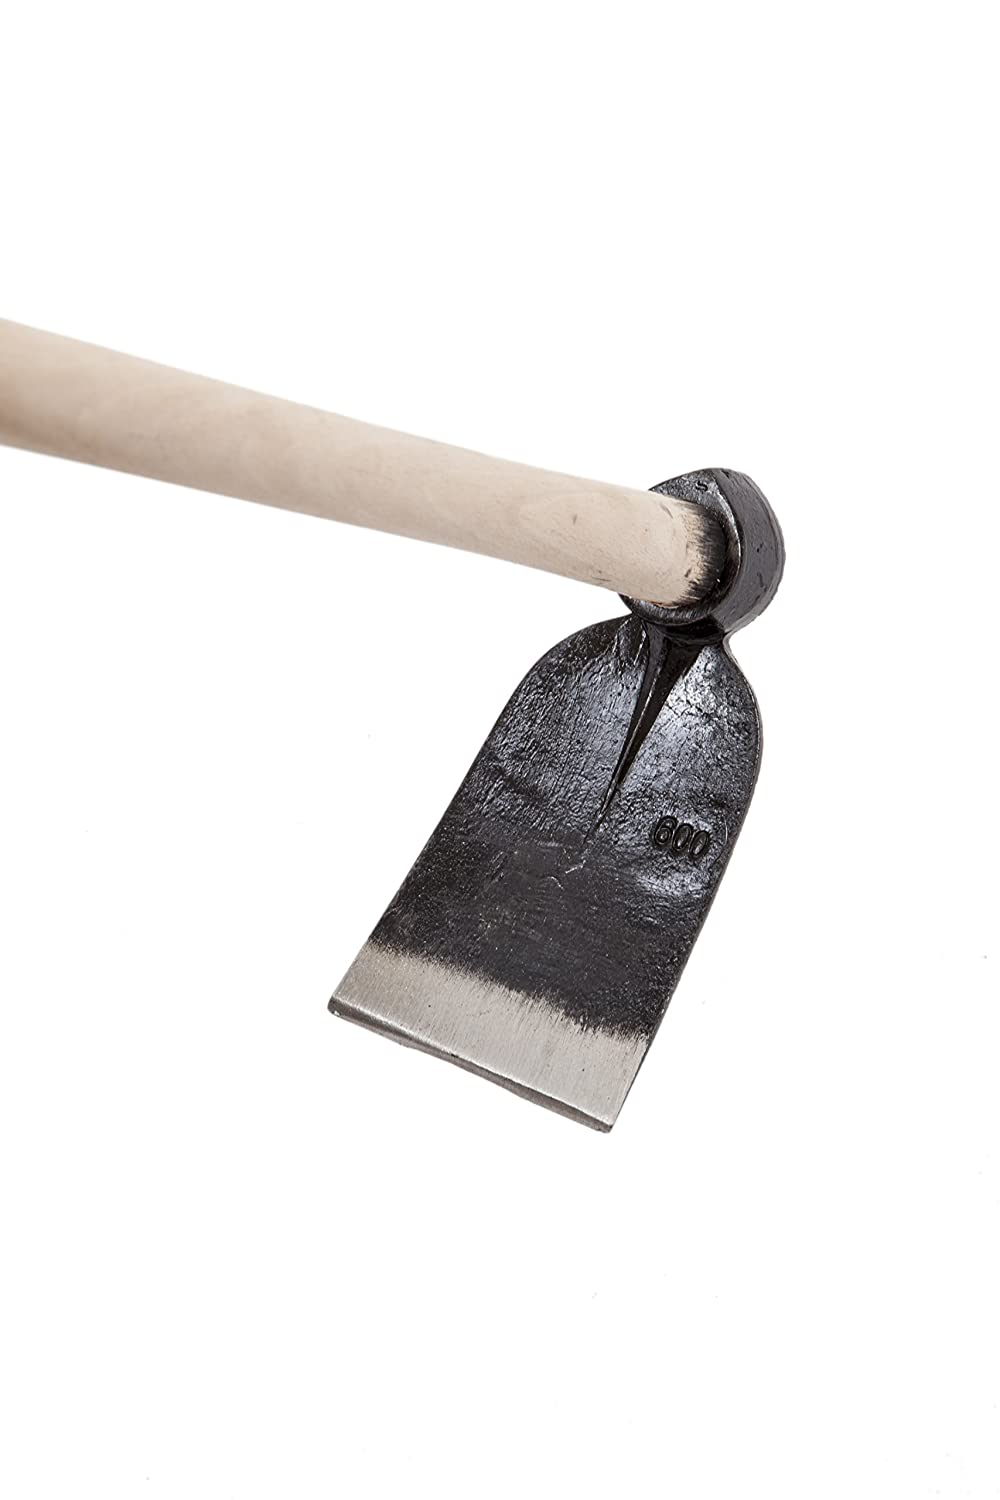 Hebei 244202 – 60 Classic Forged Hoe, 0.6 kg, 244202 – 60, grey, 15.5 x 10.5 x 3 cm, 244202 – 60 244202 - 60 244202-60